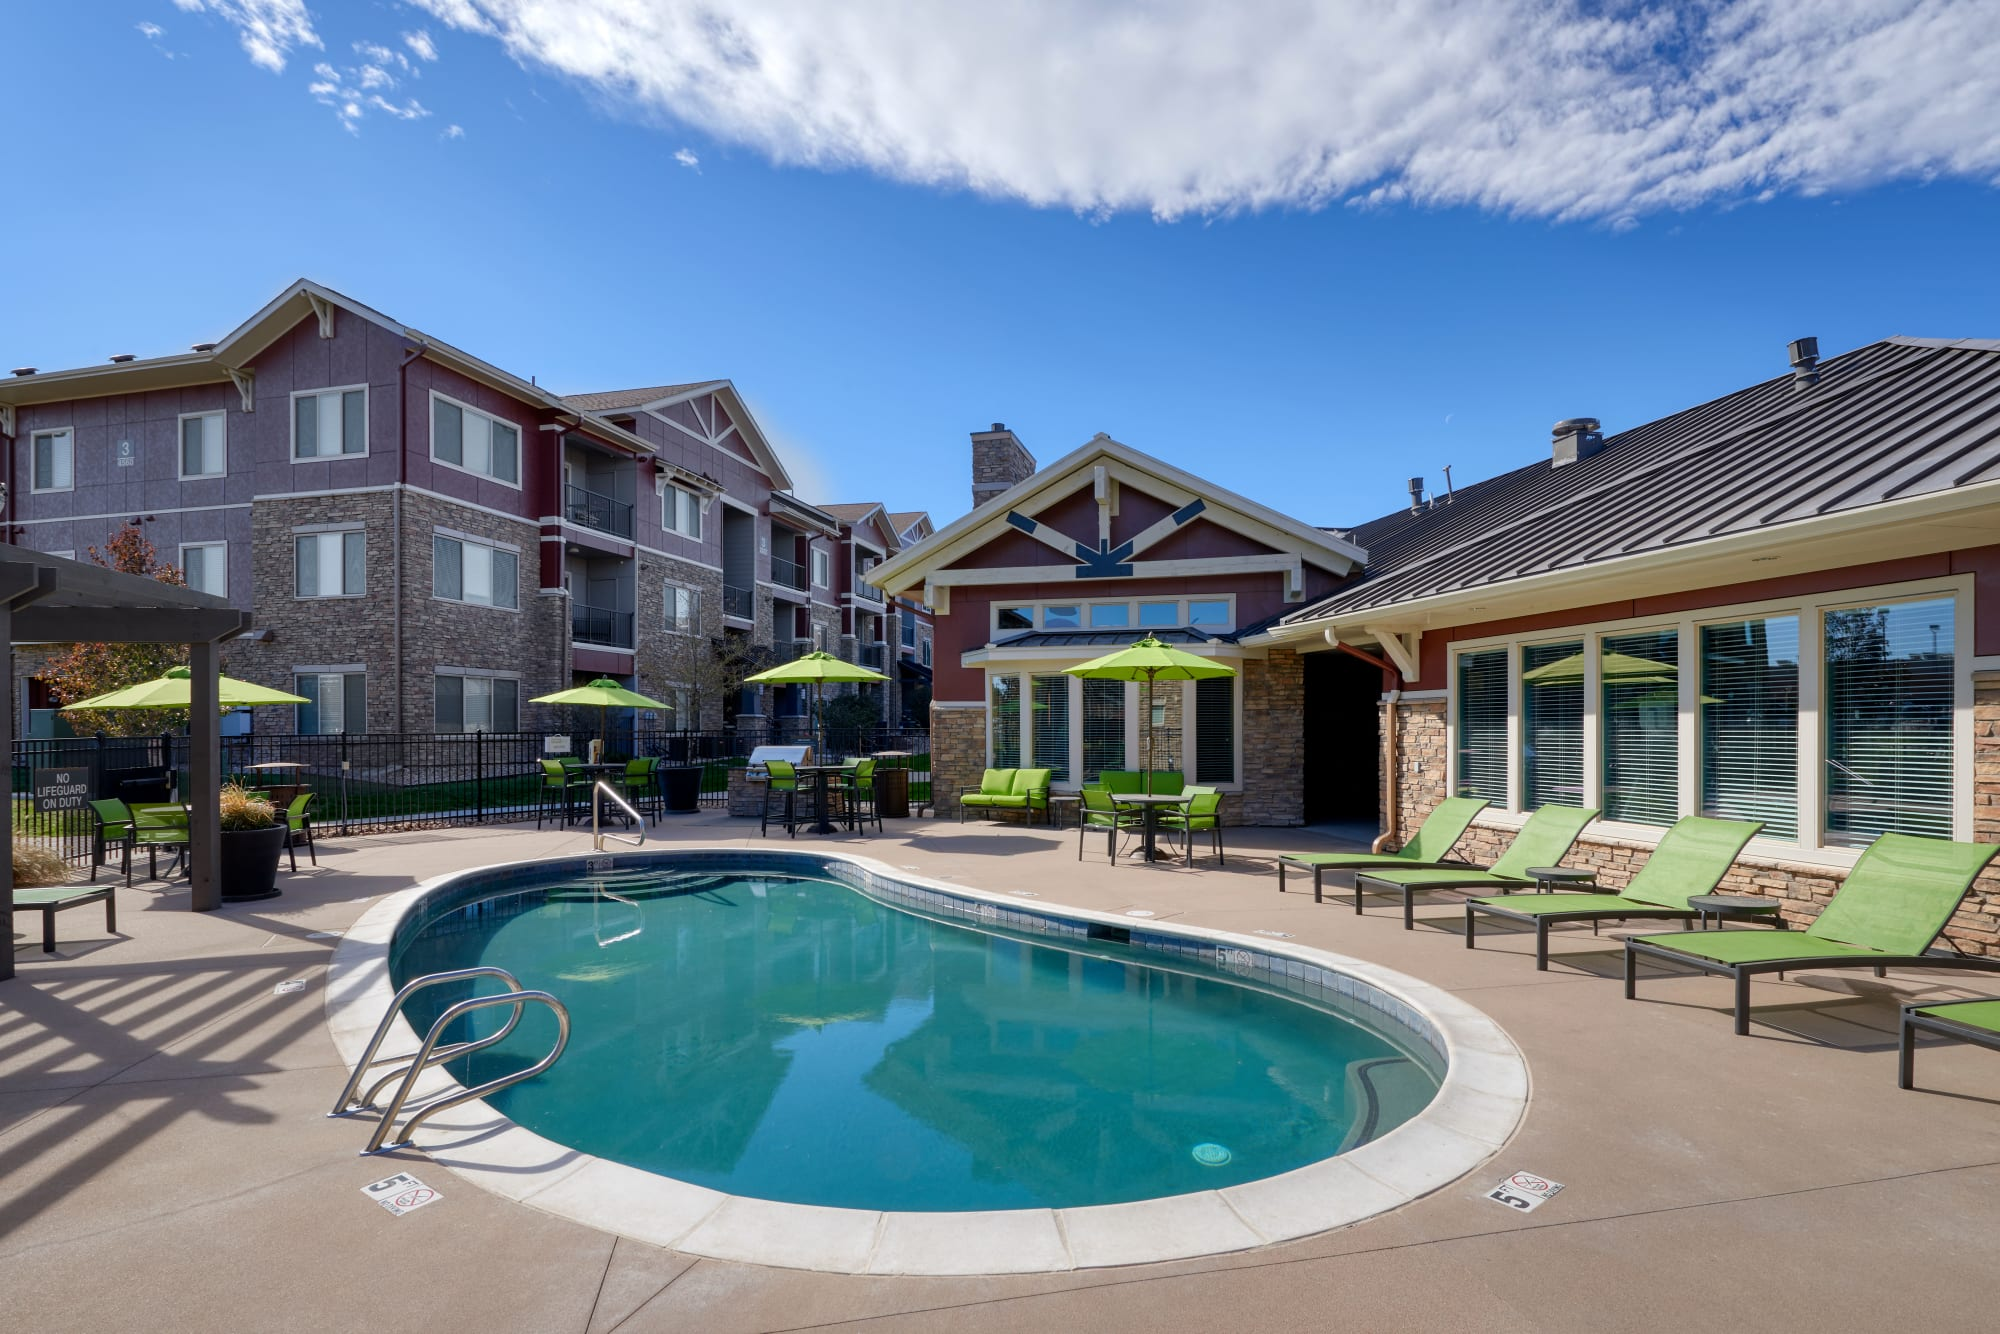 The year-round swimming pool and lounge area at M2 Apartments in Denver, Colorado